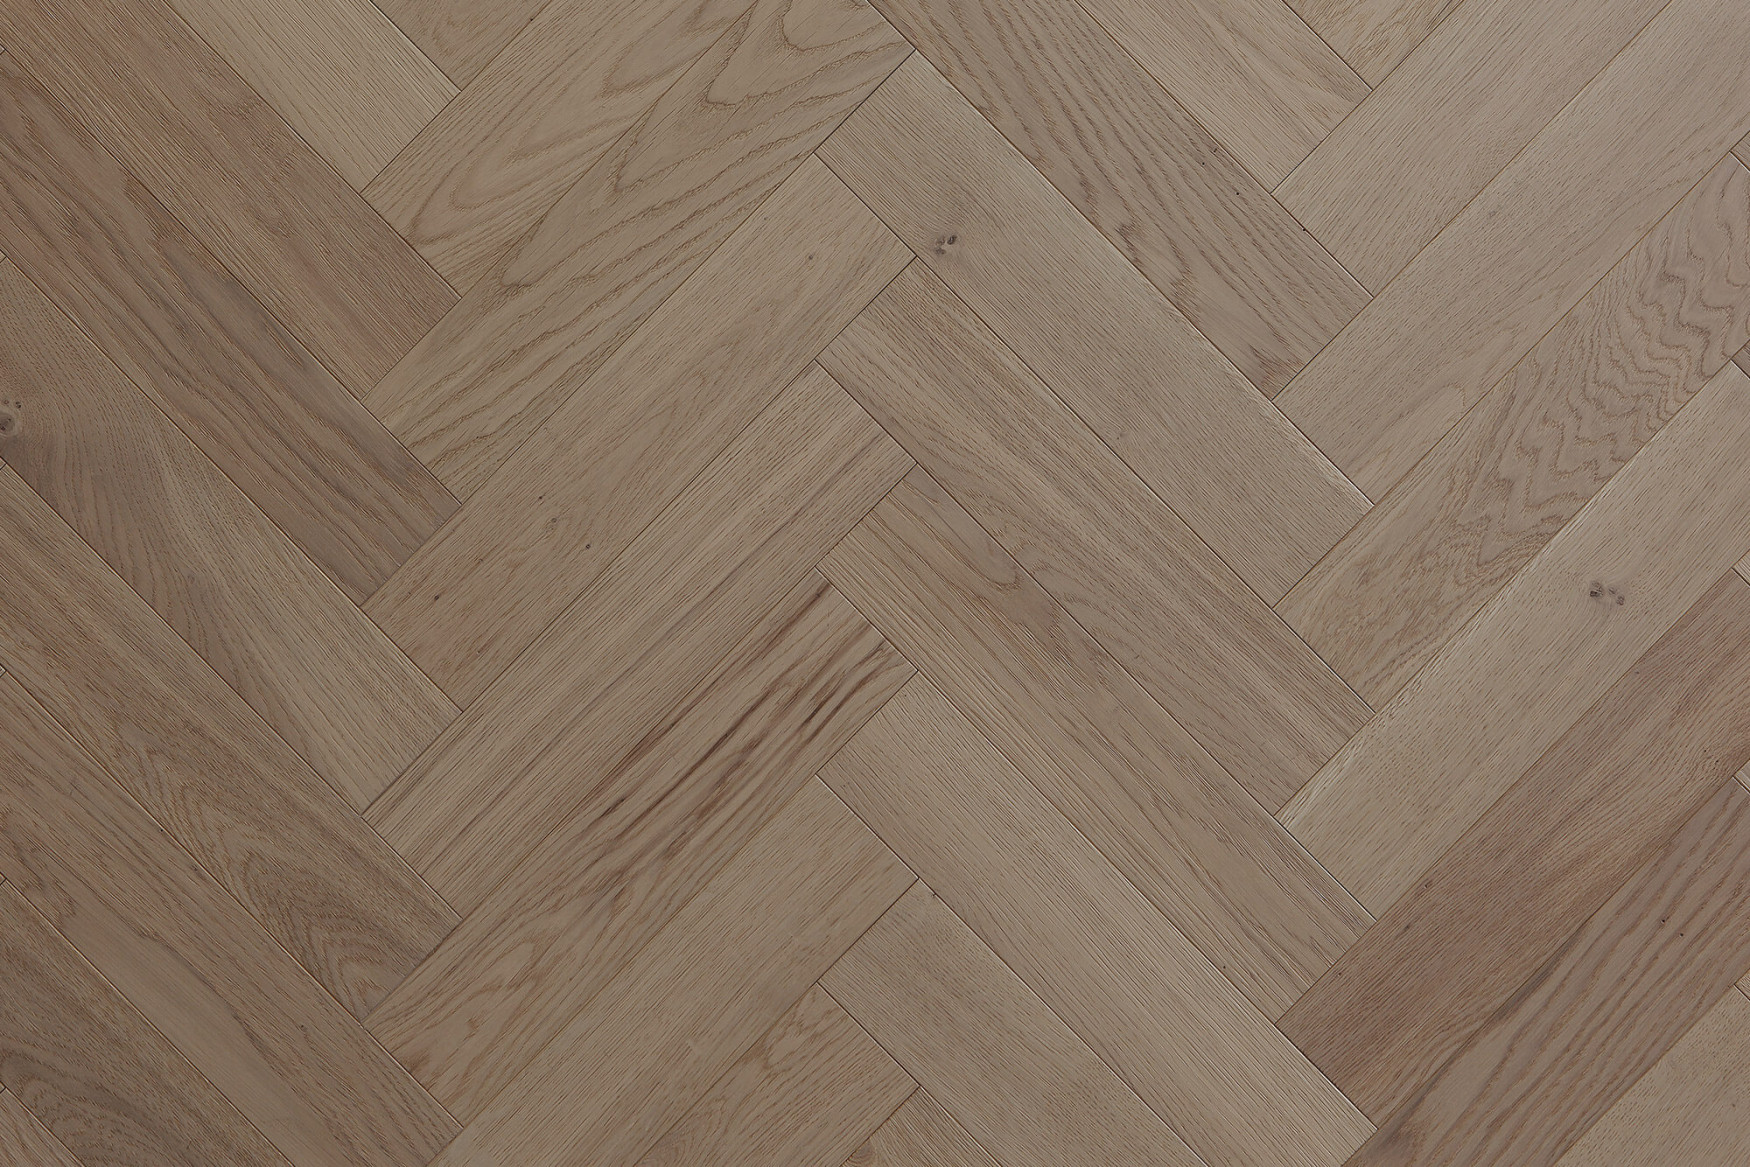 Element7-parquet--AJ_562_580_PureOak_3